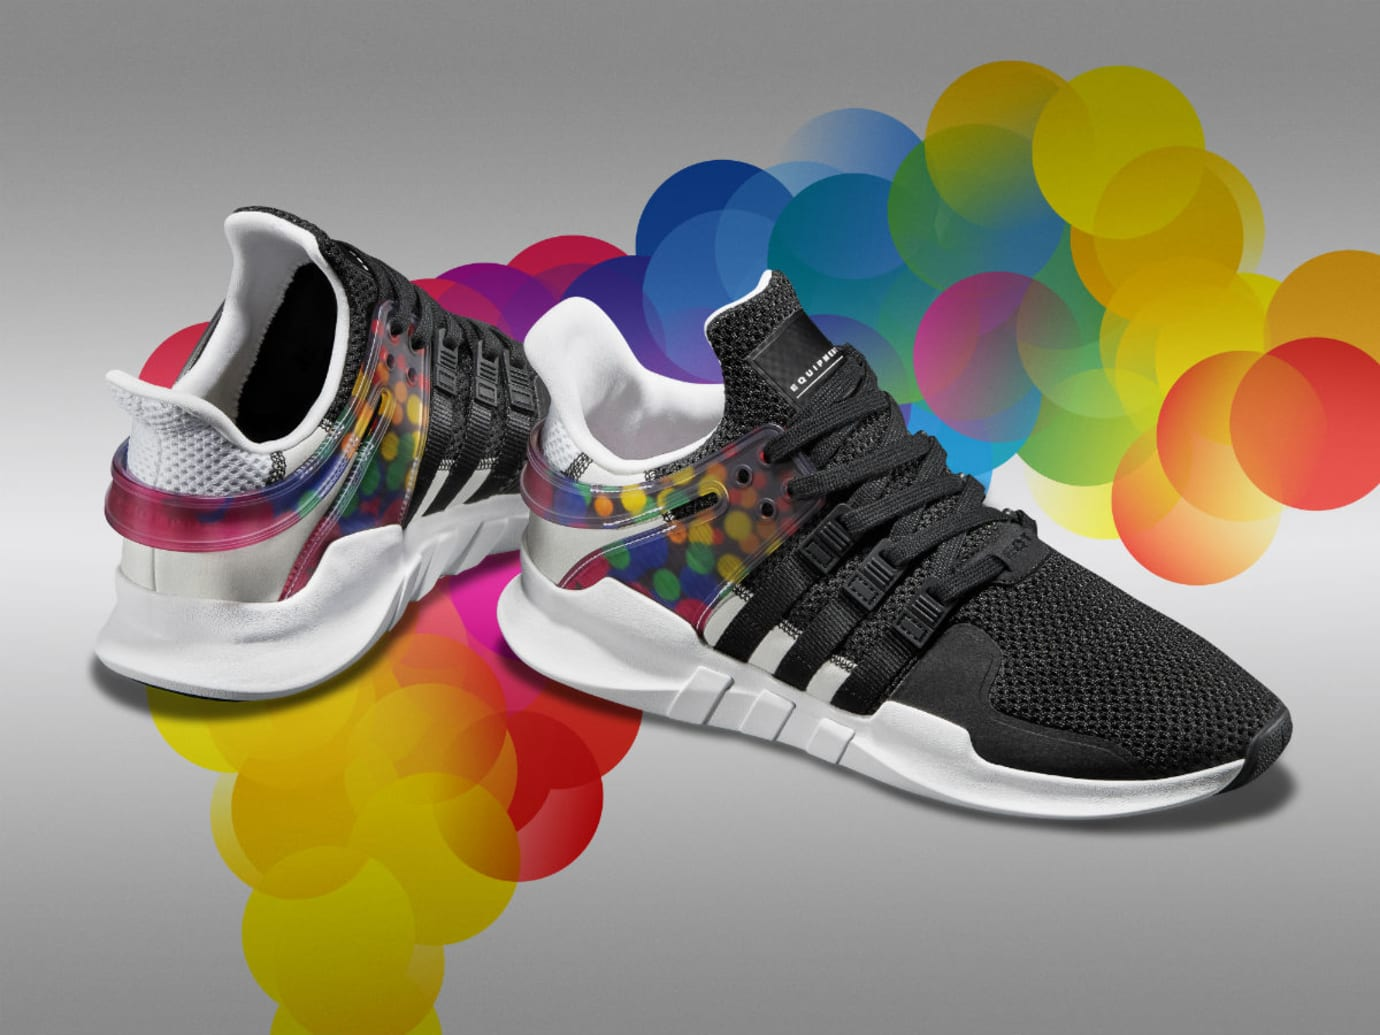 Adidas Pride Pack EQT Support 93 ADV Release Date